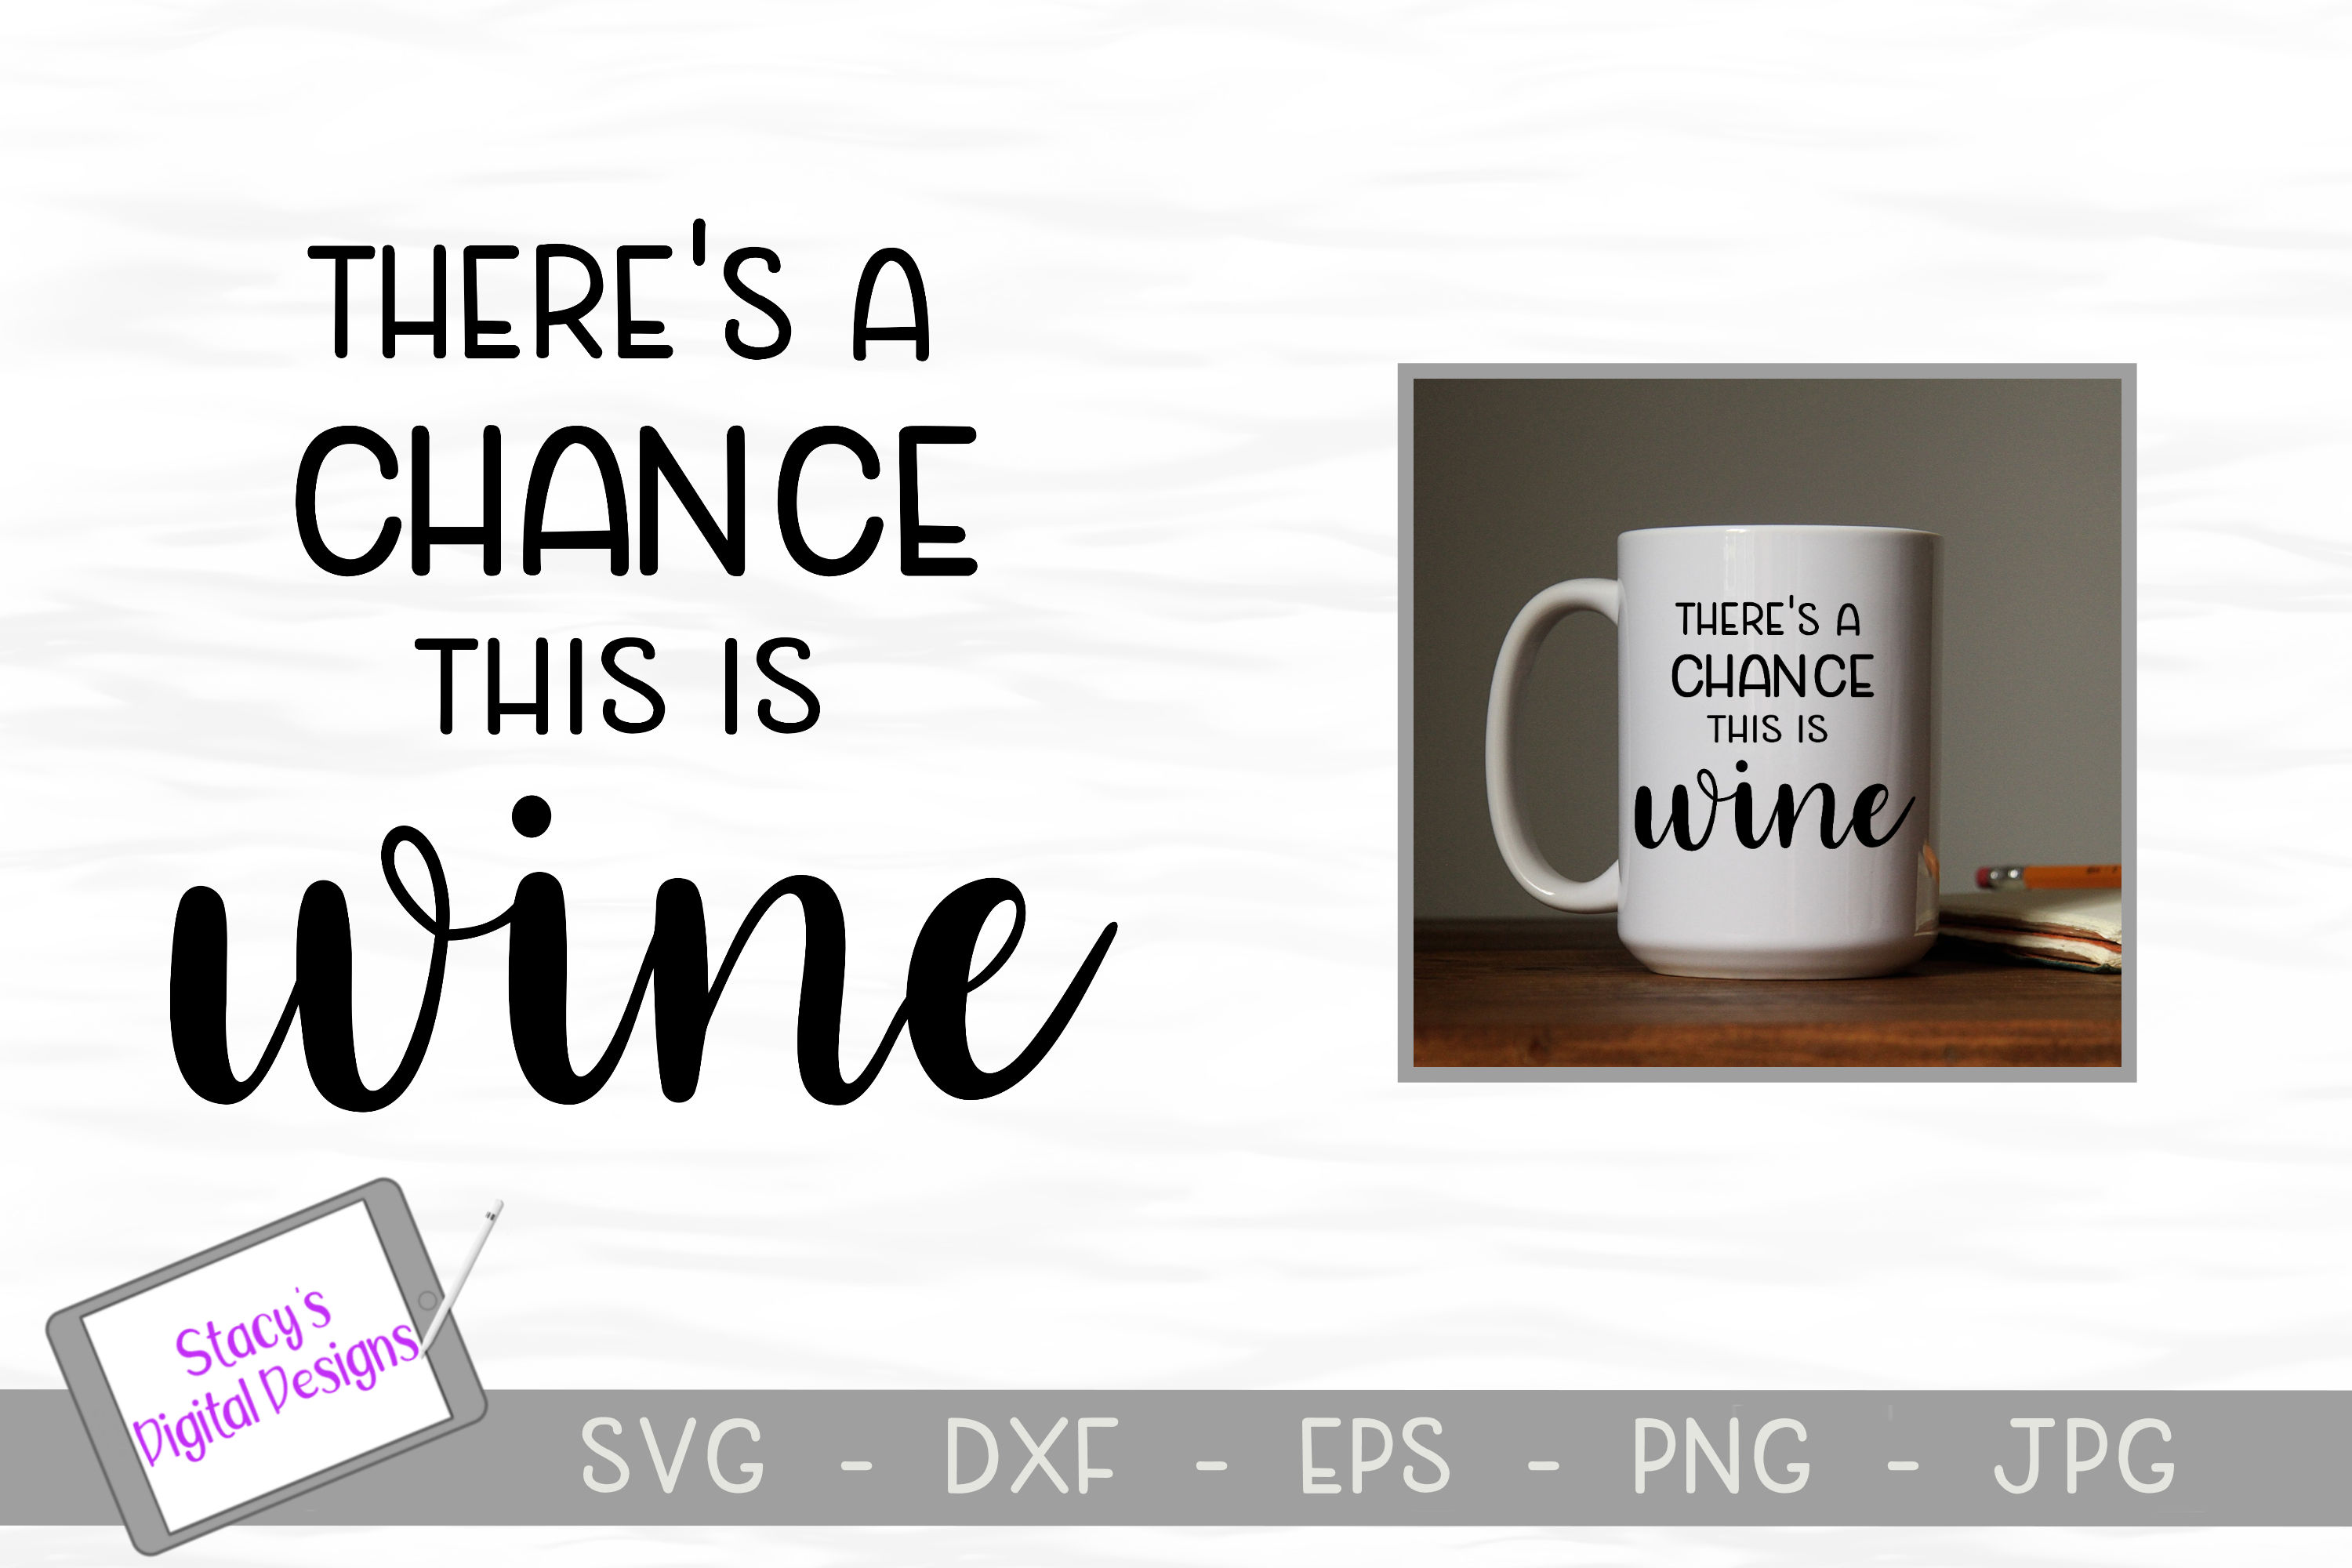 Wine SVG - There's a chance this is wine example image 1